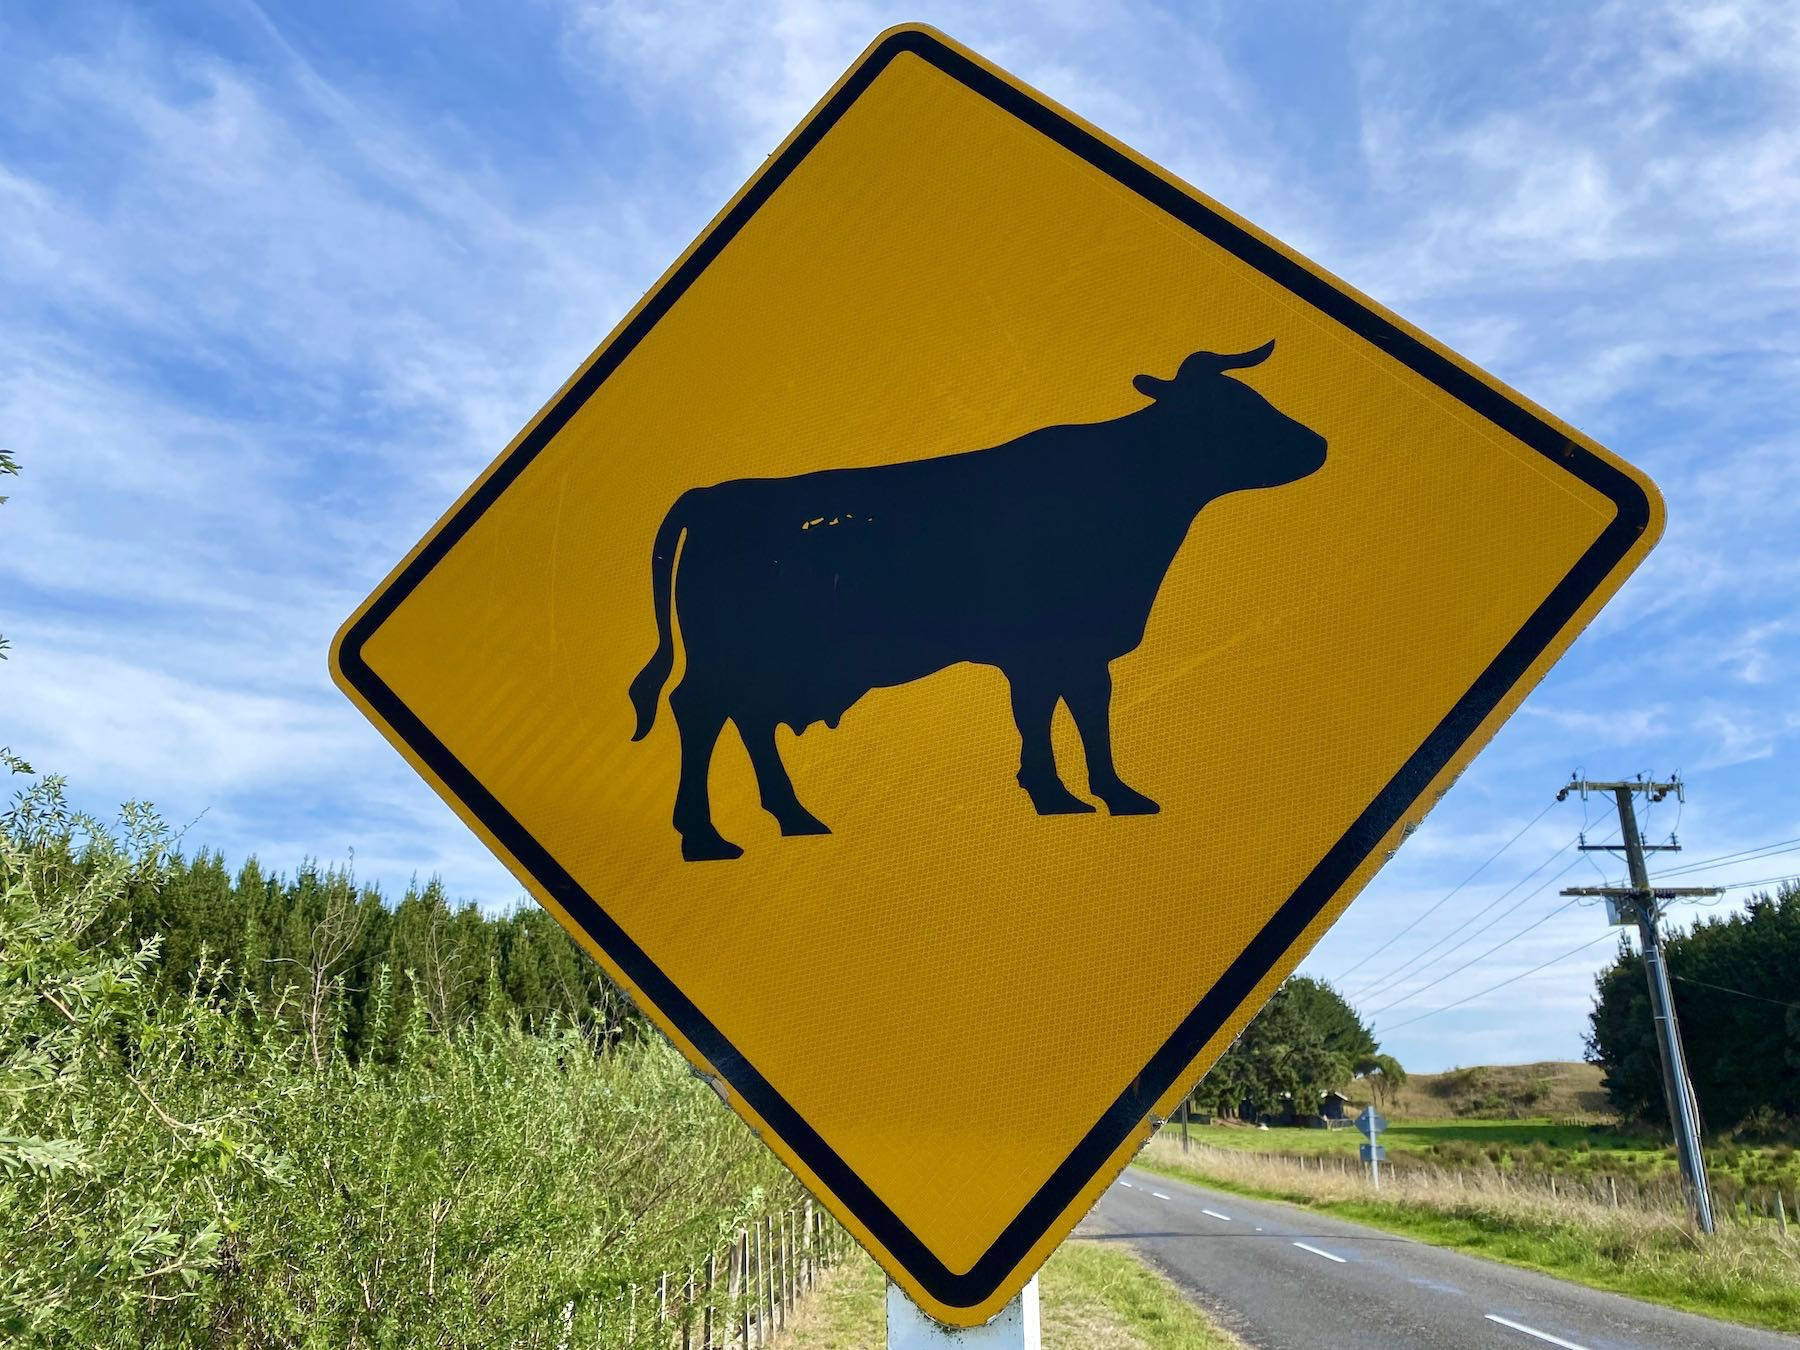 Traffic sign with yellow background warning of cows ahead.